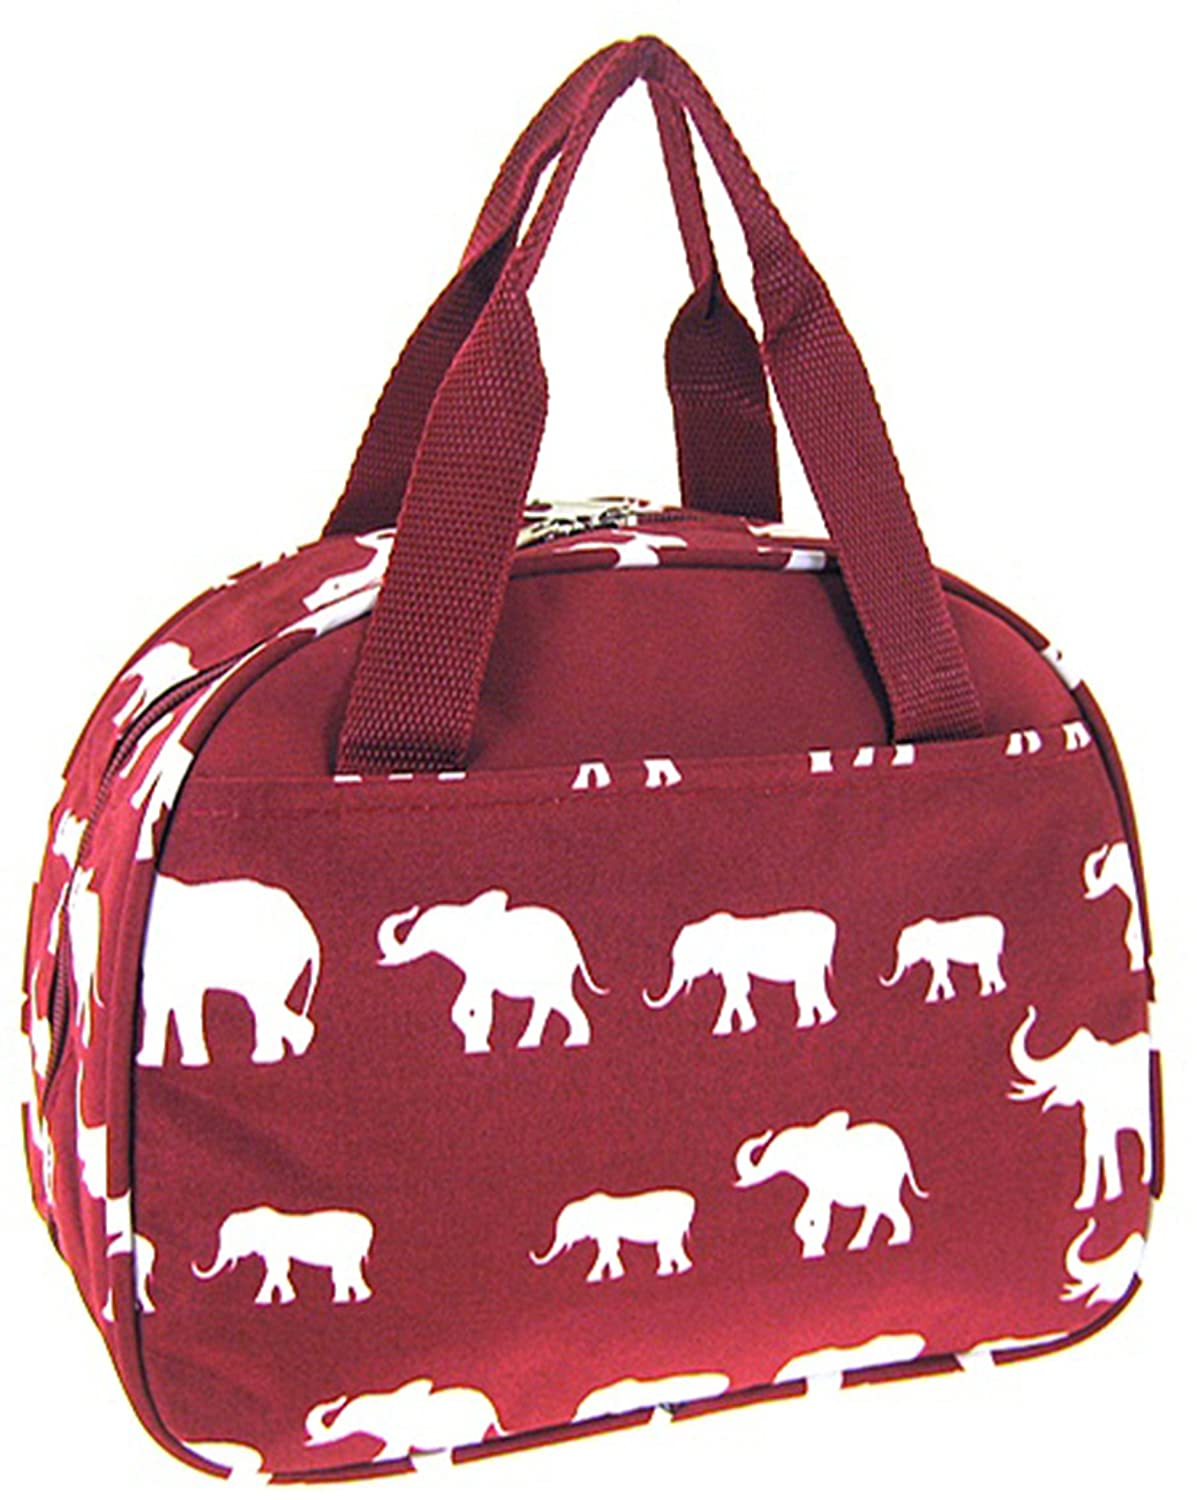 Elephant Print Insulated Lunch Bag Tote (Burgundy Red)